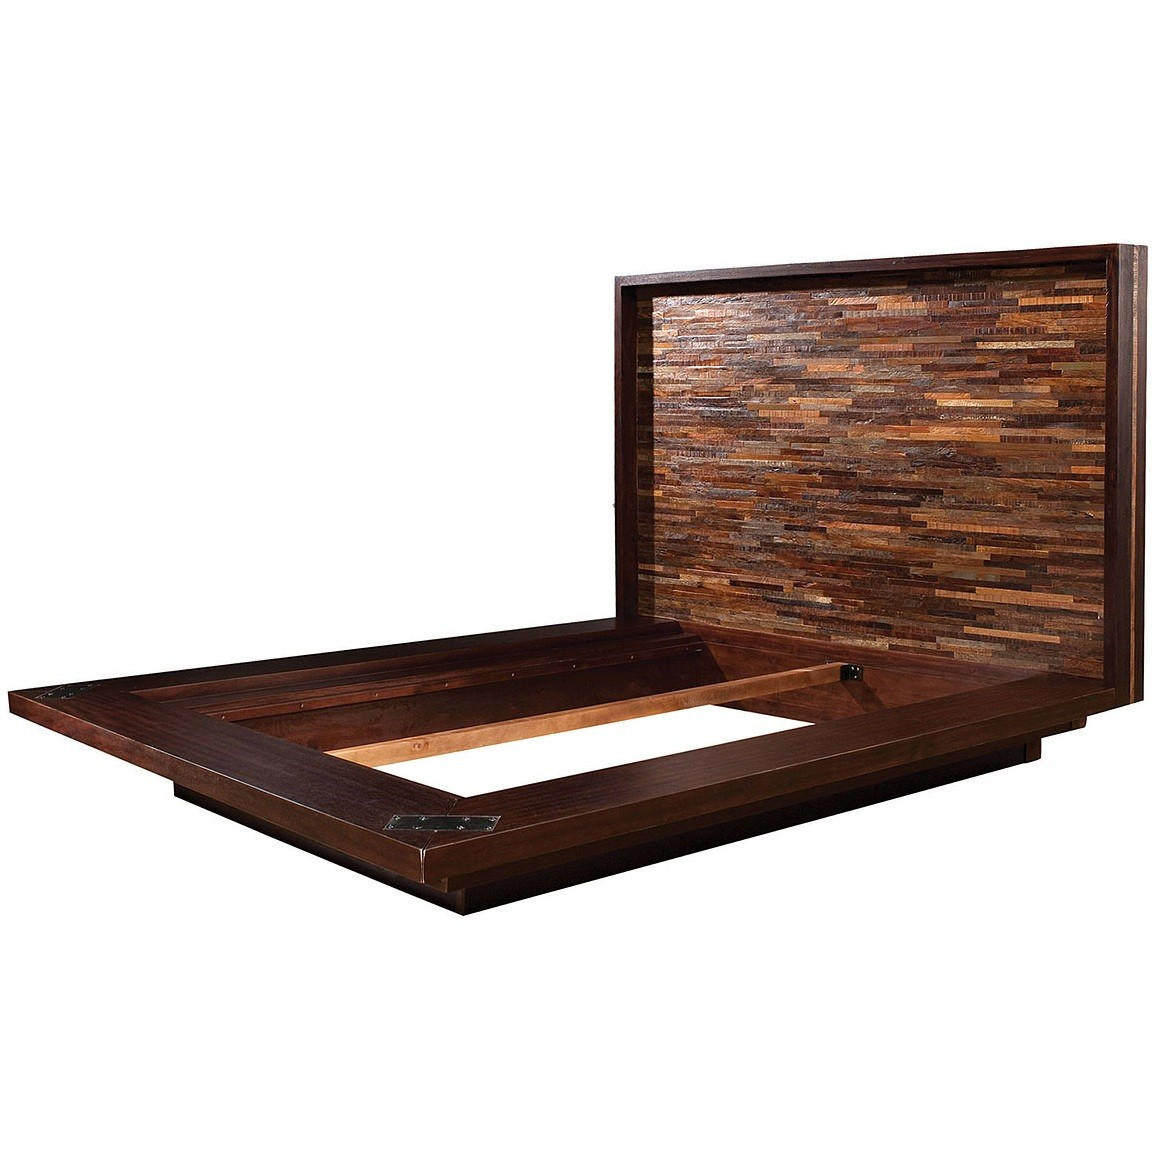 Wood Bed Frame Solid Wood Platform Bed Frame Reclaimed Wood Platform . Full resolution‎  file, nominally Width 1154 Height 1164 pixels, file with #945B37.